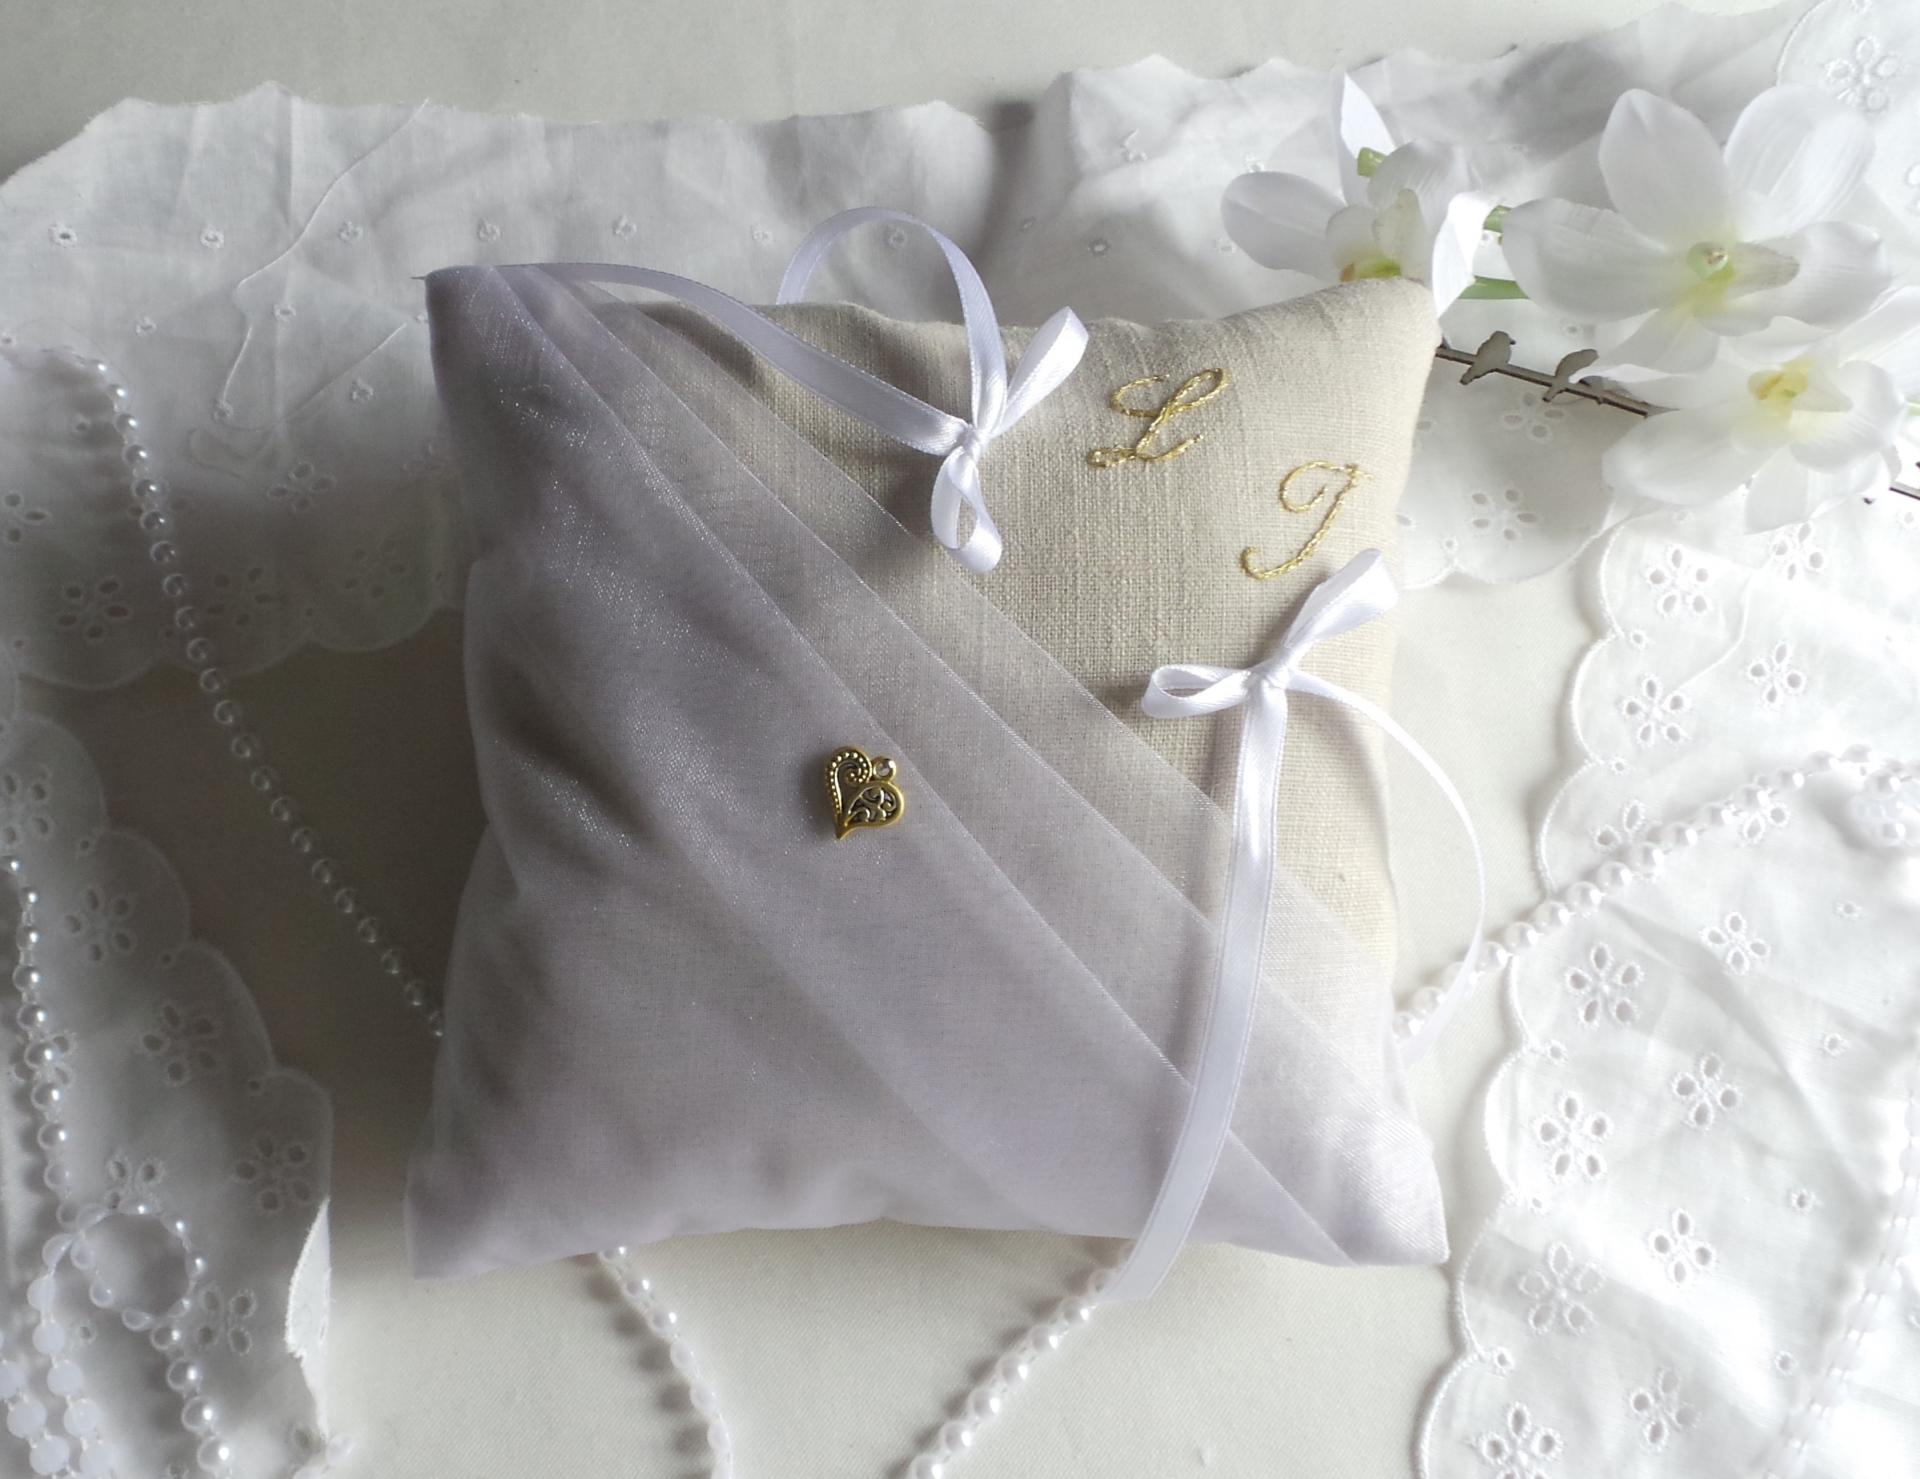 Coussin mariage chic blanc original 3